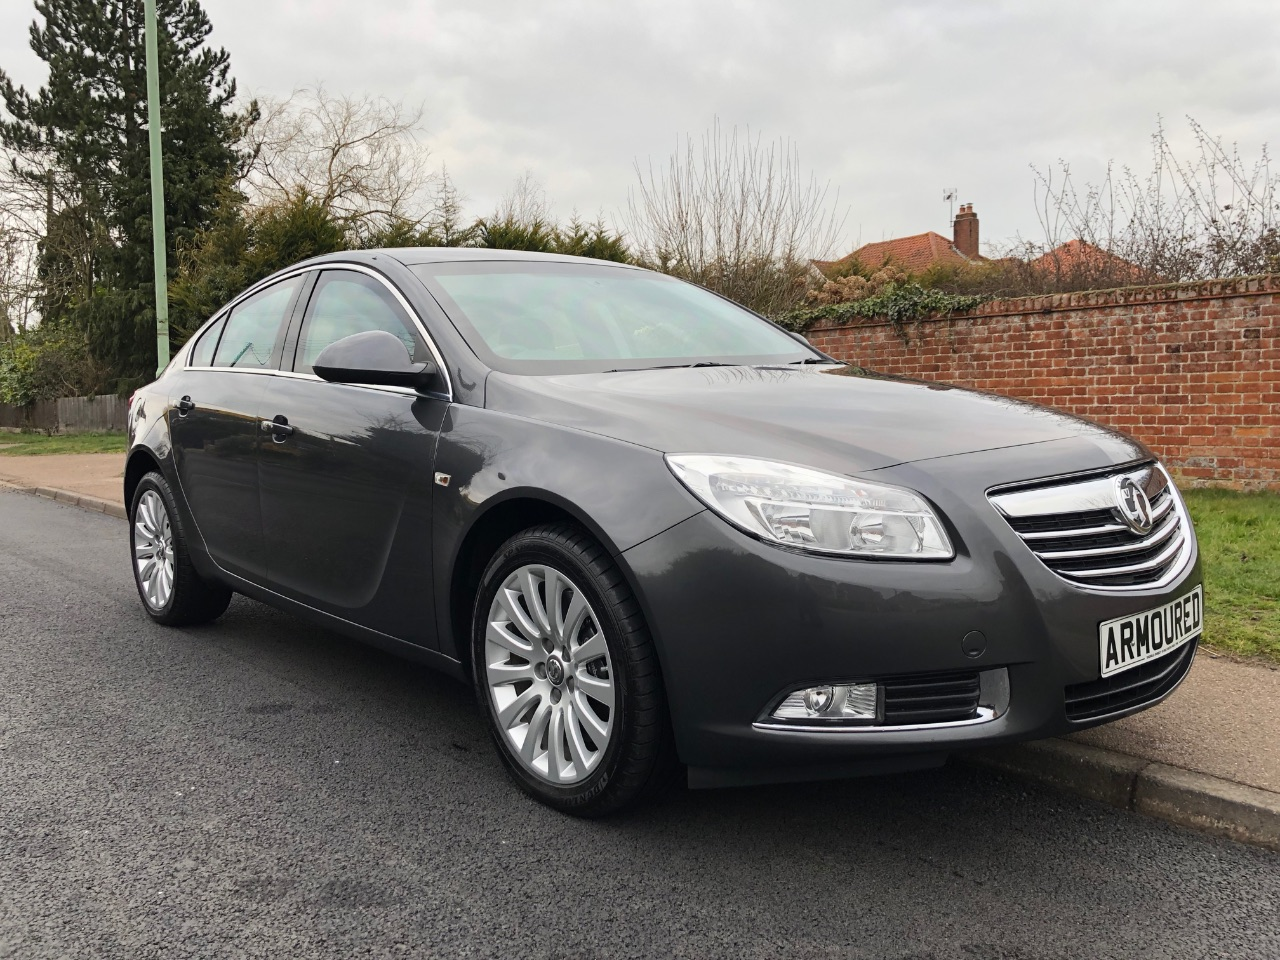 Vauxhall Insignia 2.0 CDTi SRi [160] ARMOURED 2,000 MILES, VAUXHALL SPECIAL BUILD Hatchback Diesel GreyVauxhall Insignia 2.0 CDTi SRi [160] ARMOURED 2,000 MILES, VAUXHALL SPECIAL BUILD Hatchback Diesel Grey at Diesels Direct Lowestoft